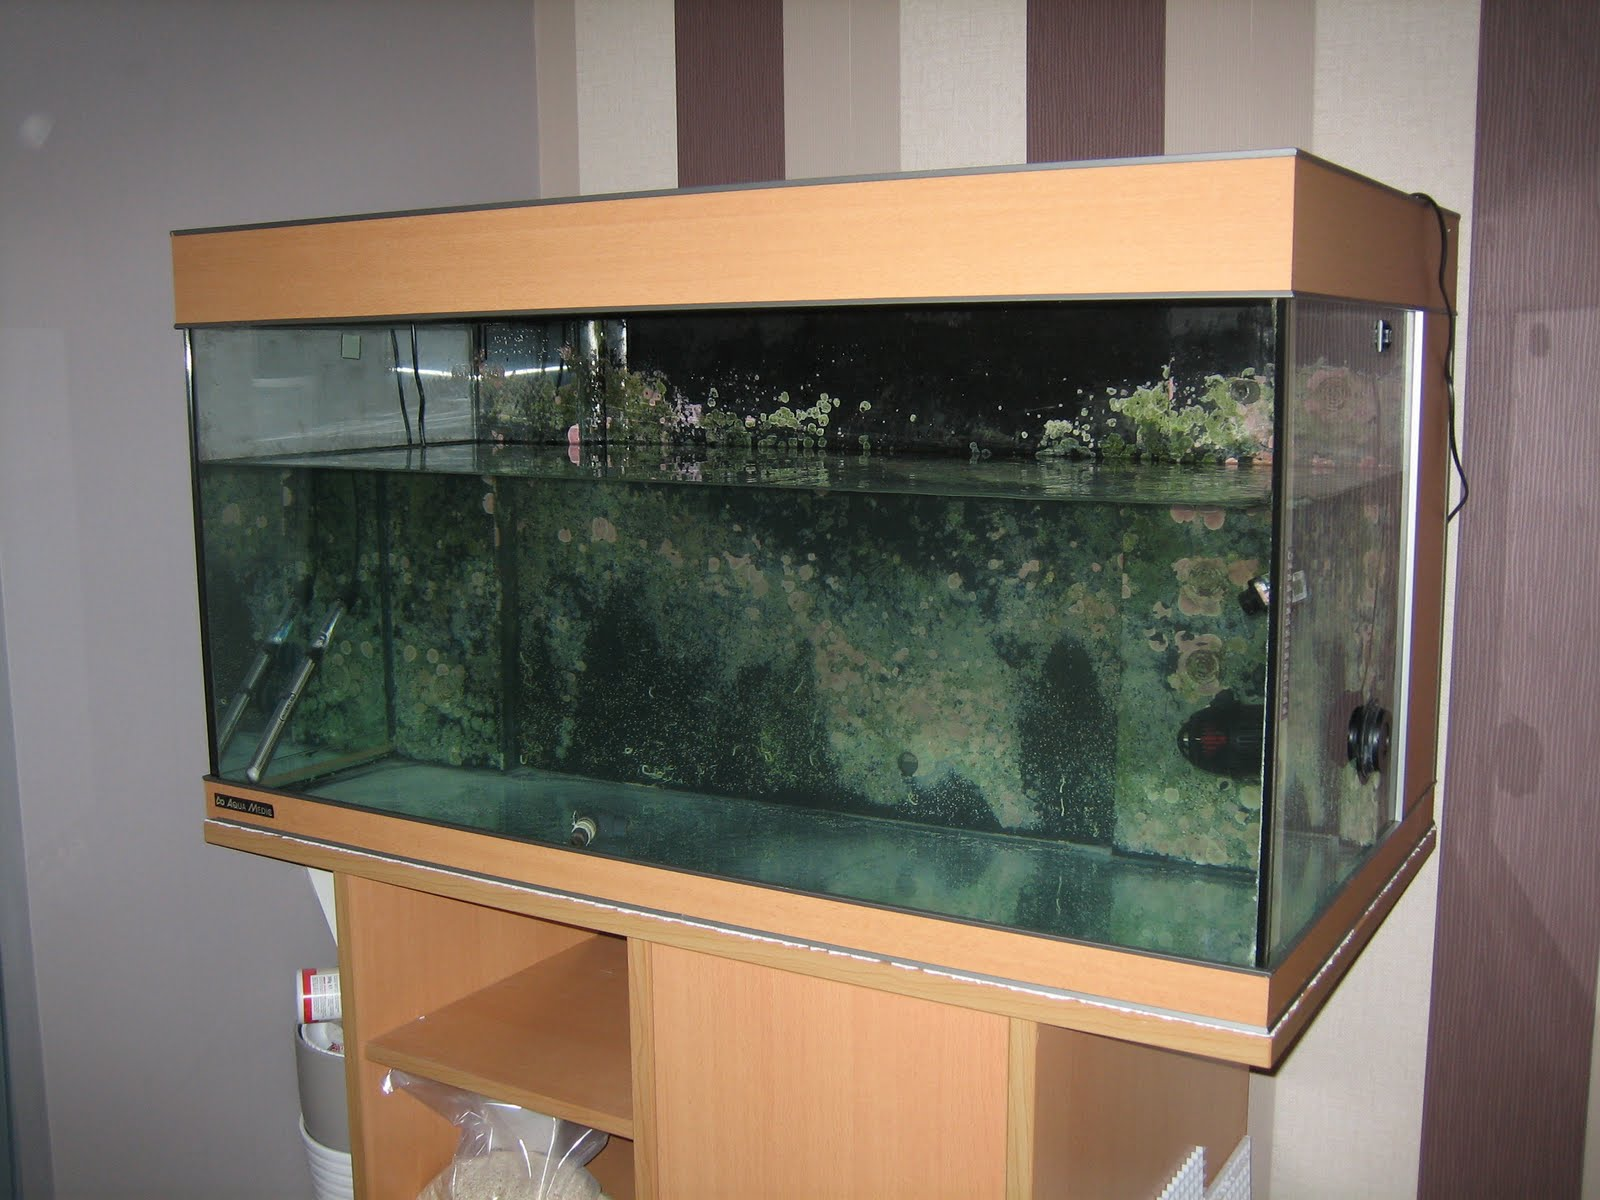 Aquarium fish tank in chennai - Above Kit Is Aqua Medic Percula I Have 2 From Both Sides That Concerns Me But If You Look At The Picture You Will See More Than 2 Overhang With A 120g